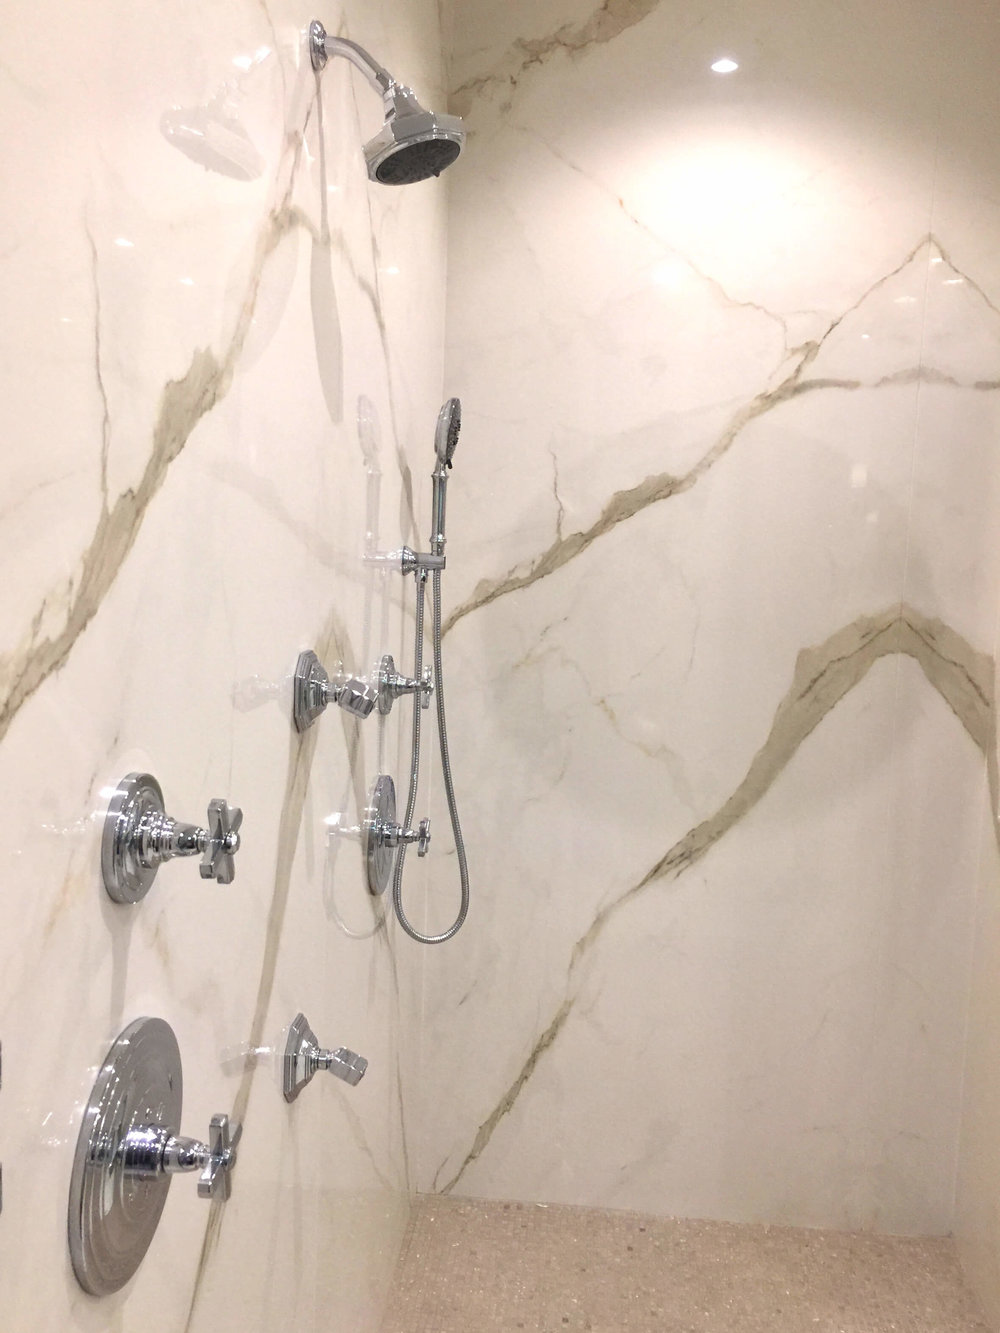 The master shower was lined with porcelain slabs, a great alternative to tile. No grout! The New American Remodel - Orlando, KBIS2018 #masterbathroom #bath #bathroomdesign #showerstall